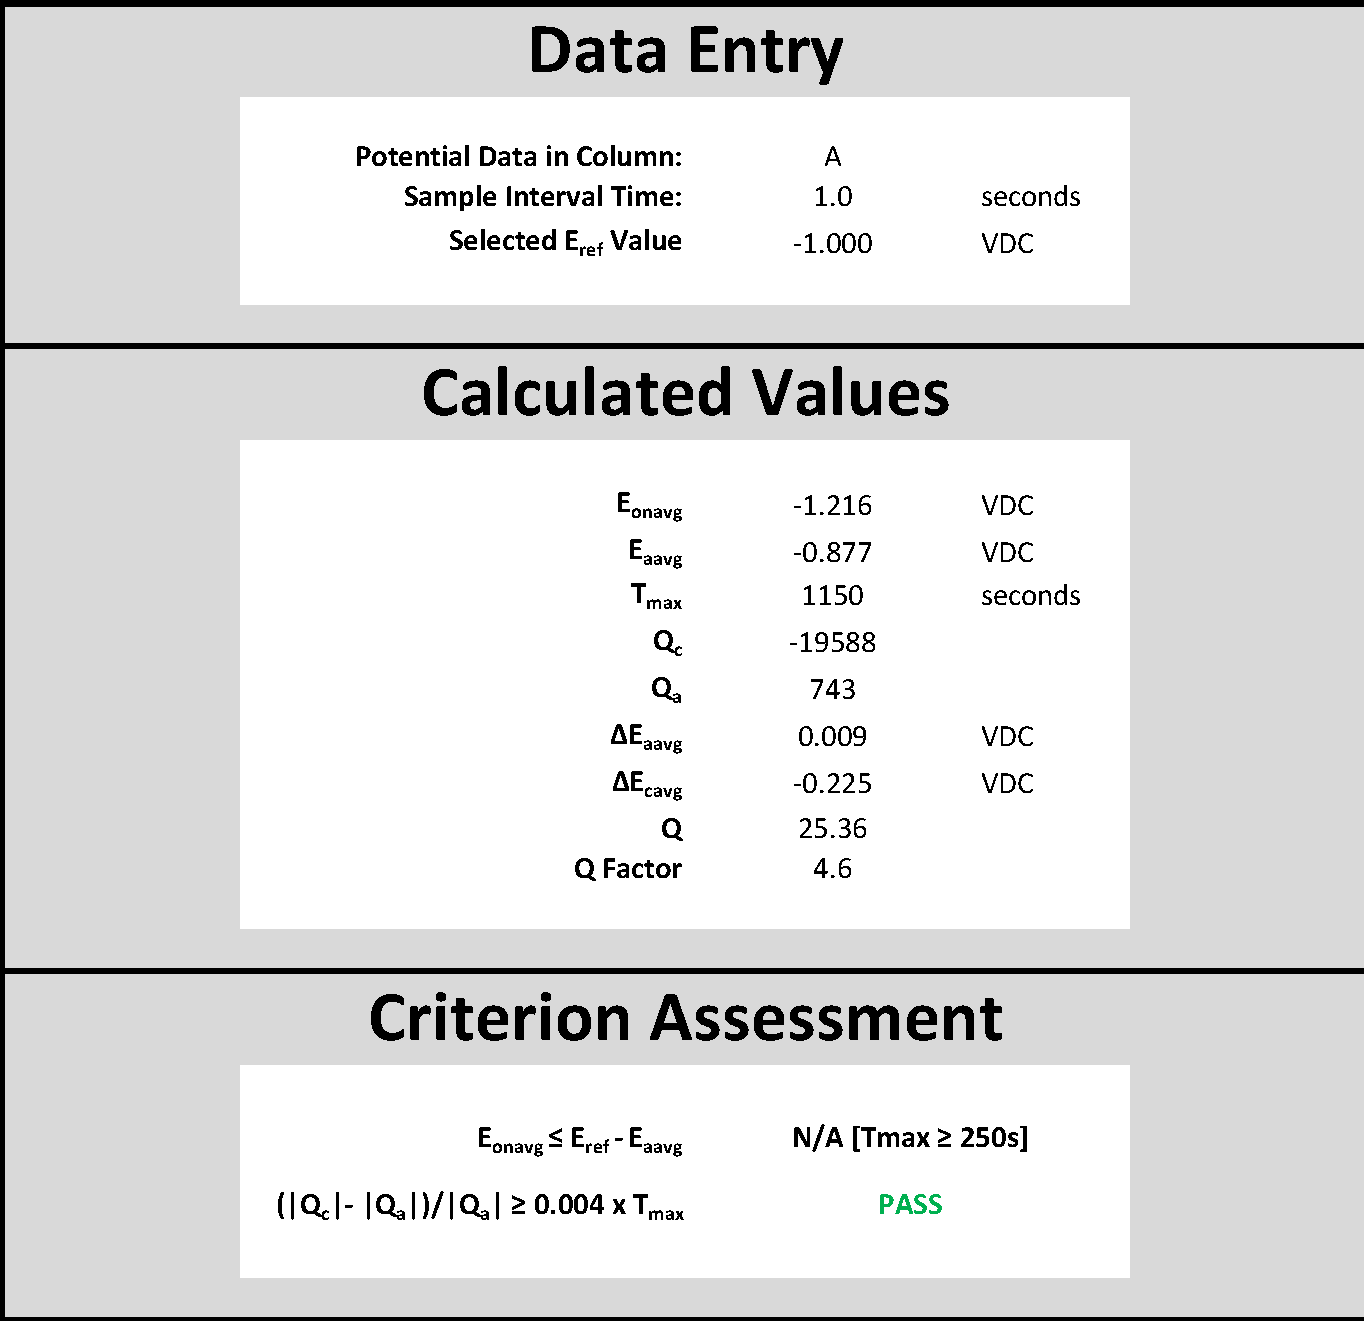 Corroconsult - 21857 Calculation Sheet Excel (Rev 5)_Page_1.png